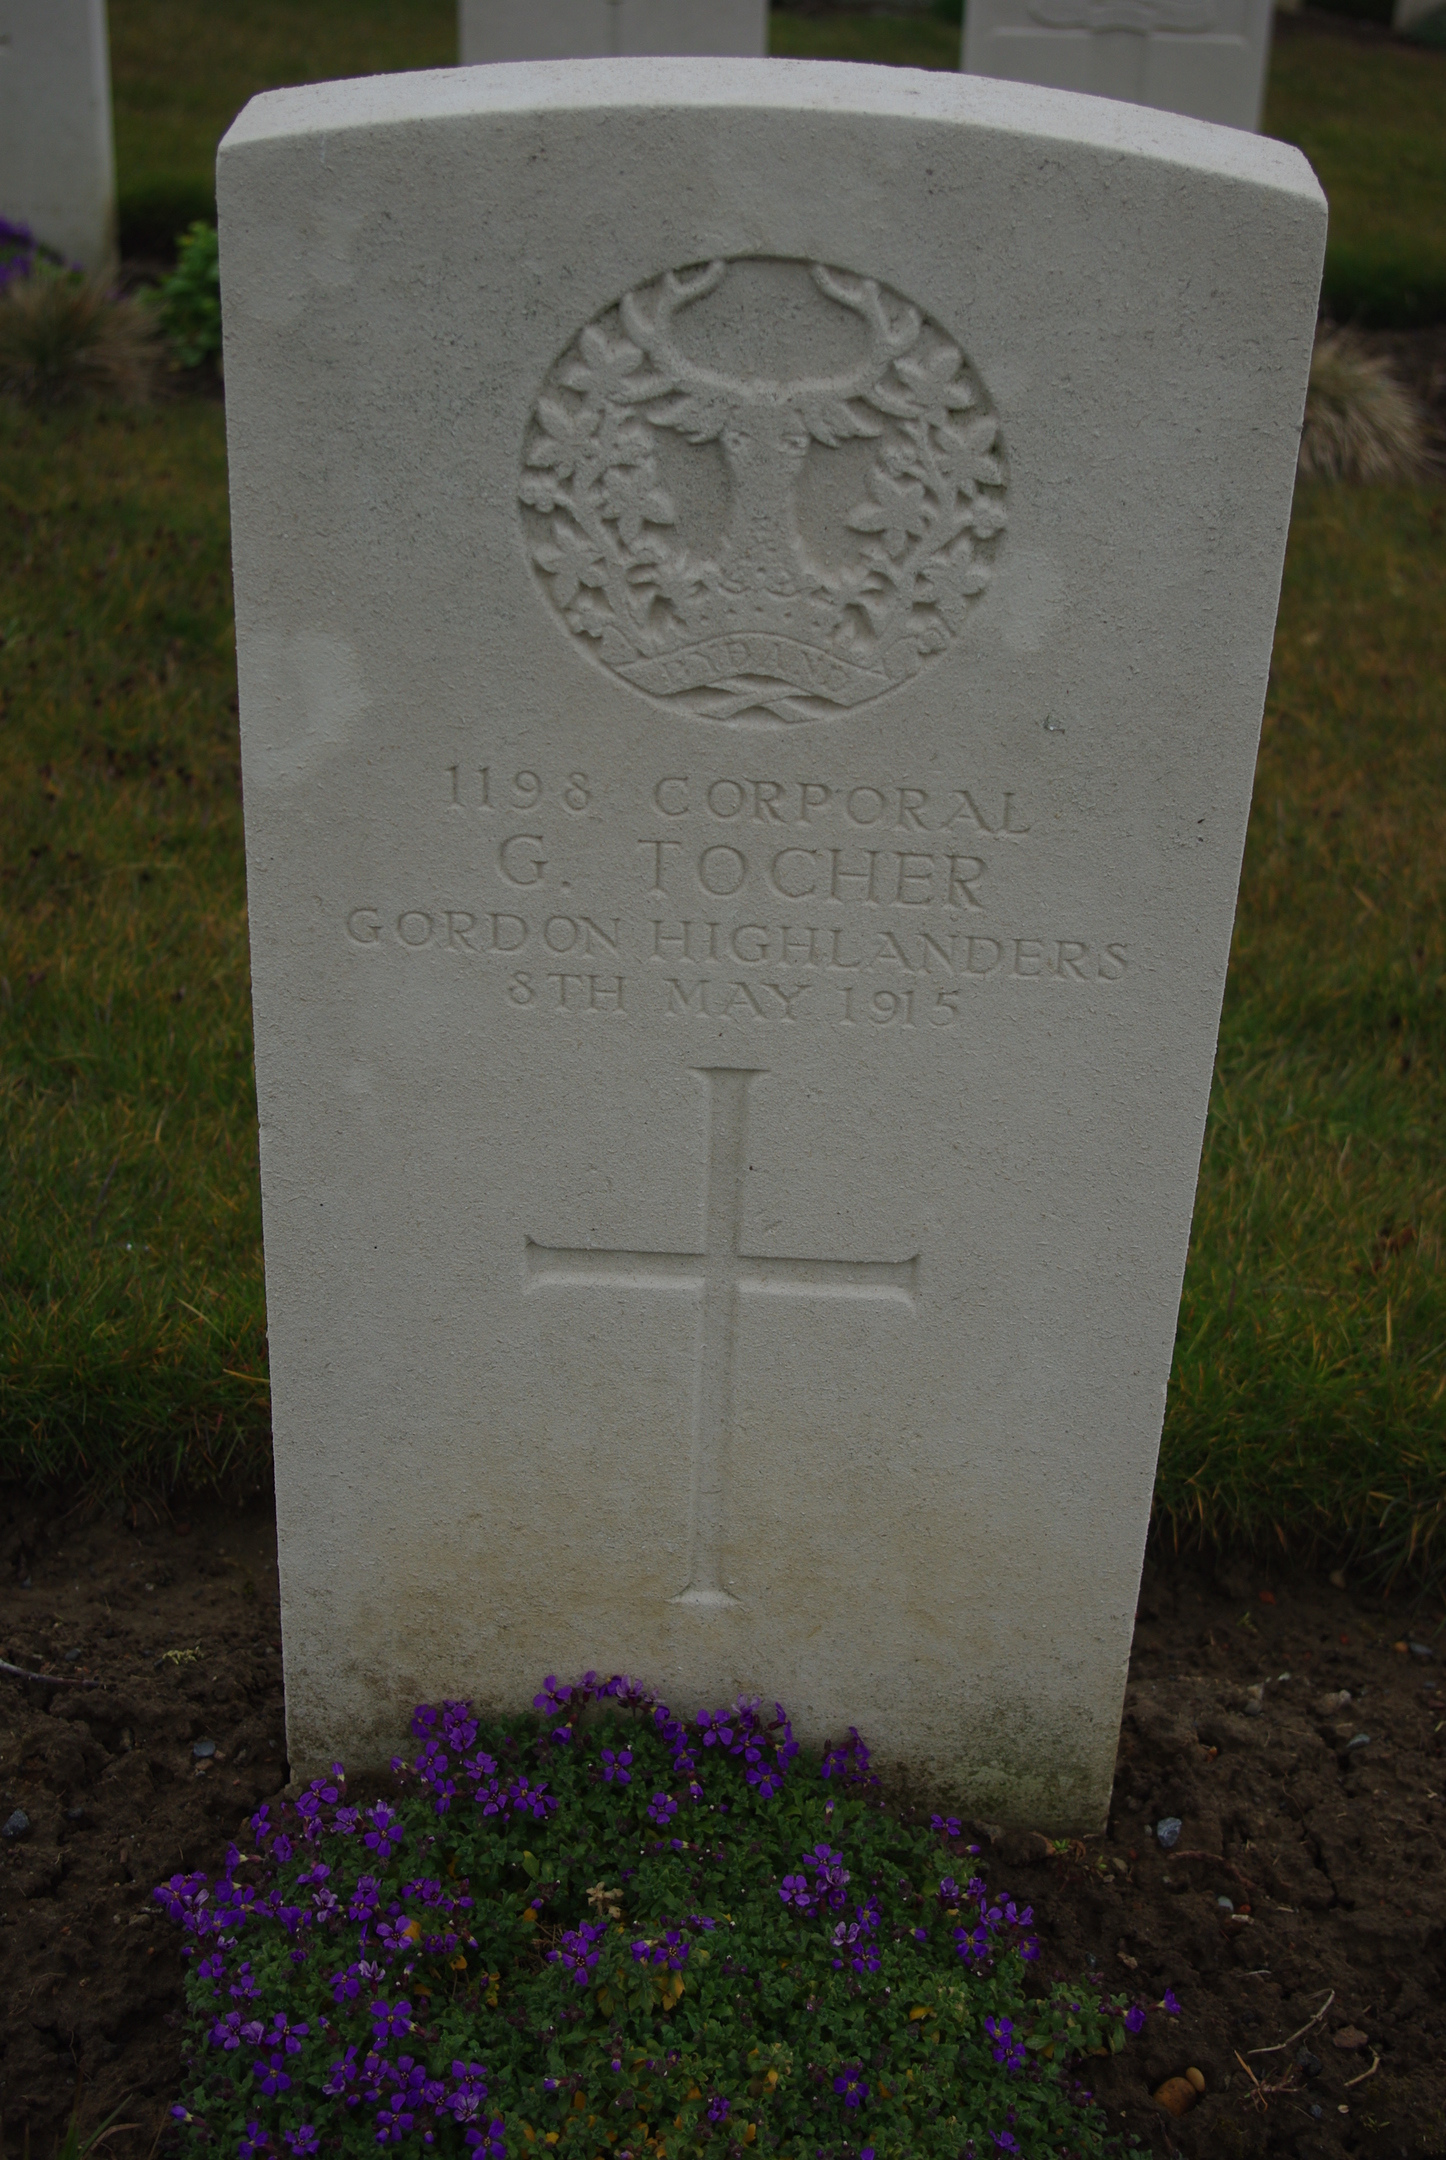 The Grave of George Tocher in La Clytee CWGC Cemetery